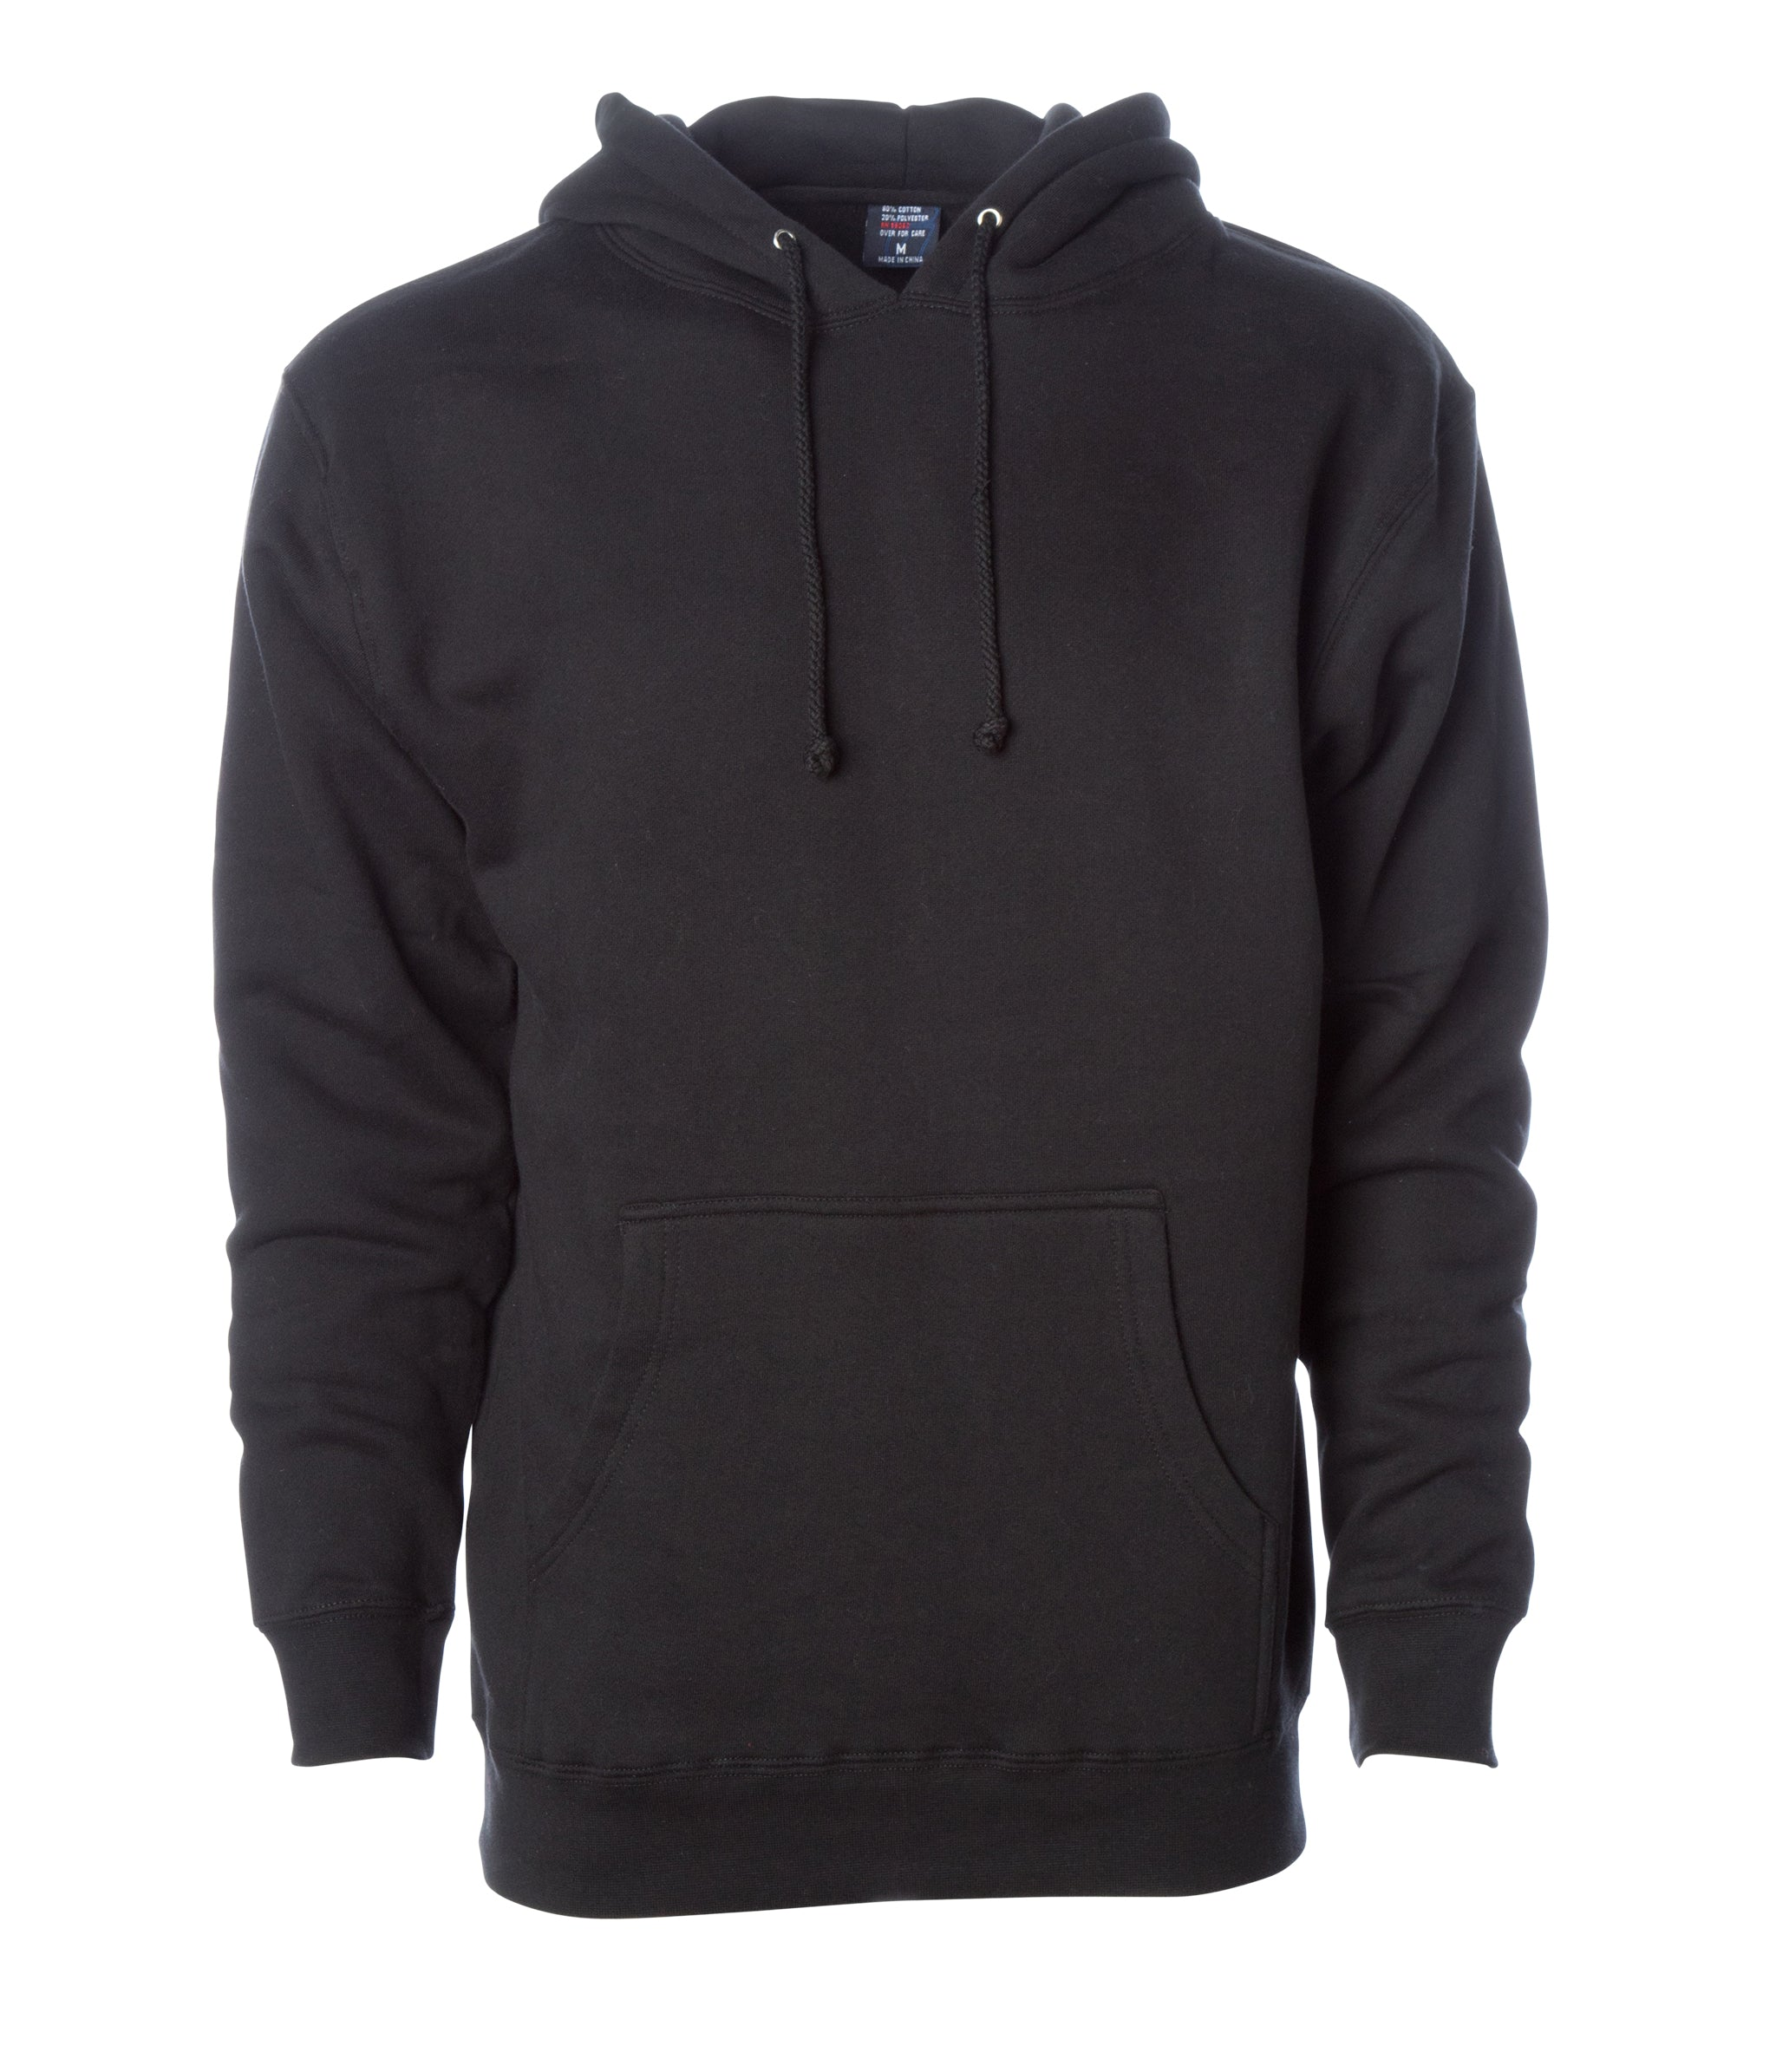 independent hoodie wholesale high quality sweatshirts manufacturers